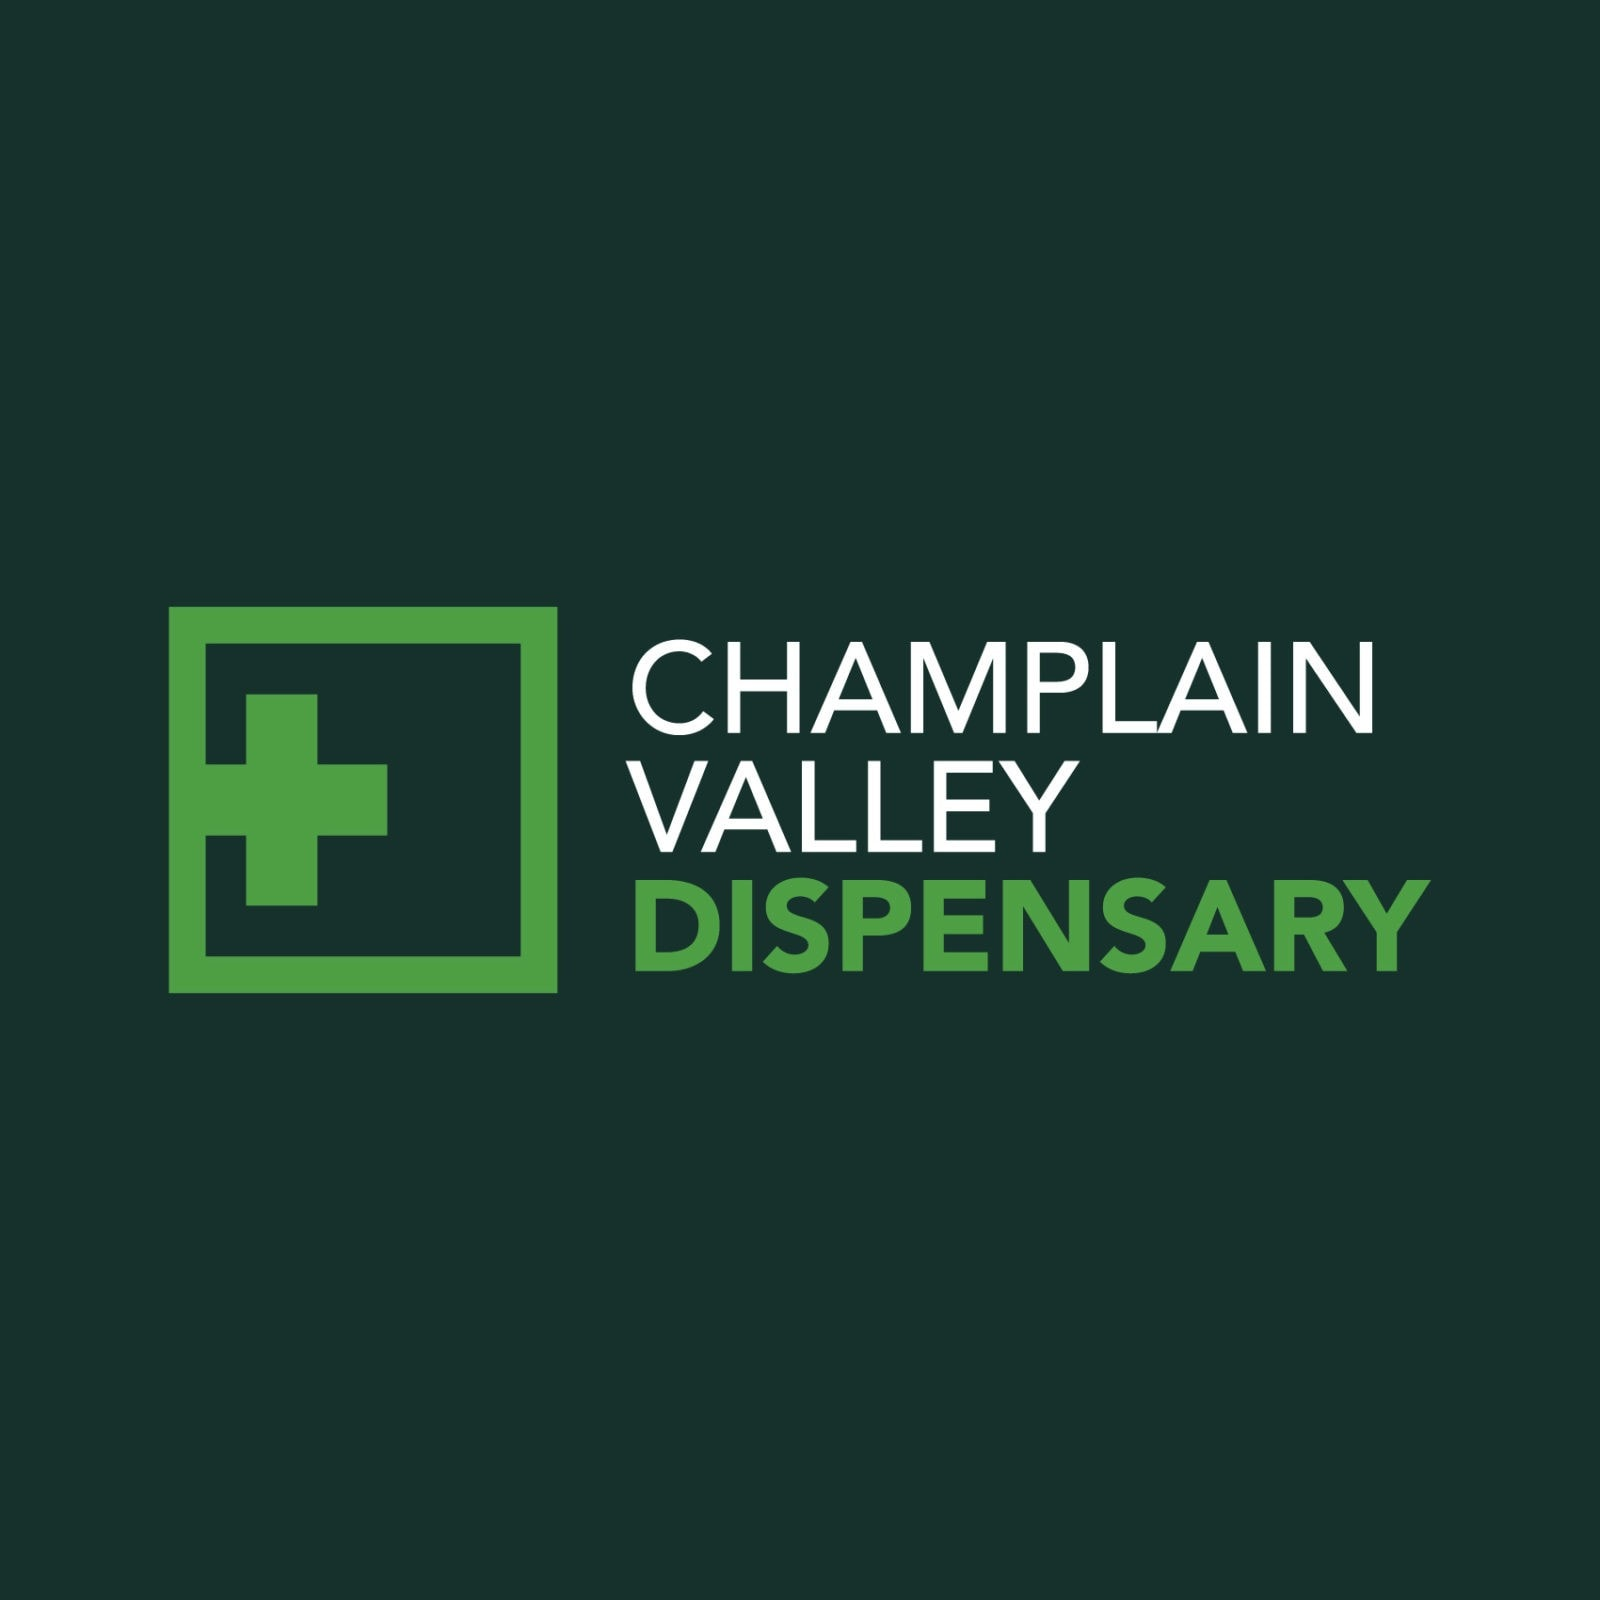 Branding and dispensary logo design for Champlain Valley Dispensary. Burlington, VT.